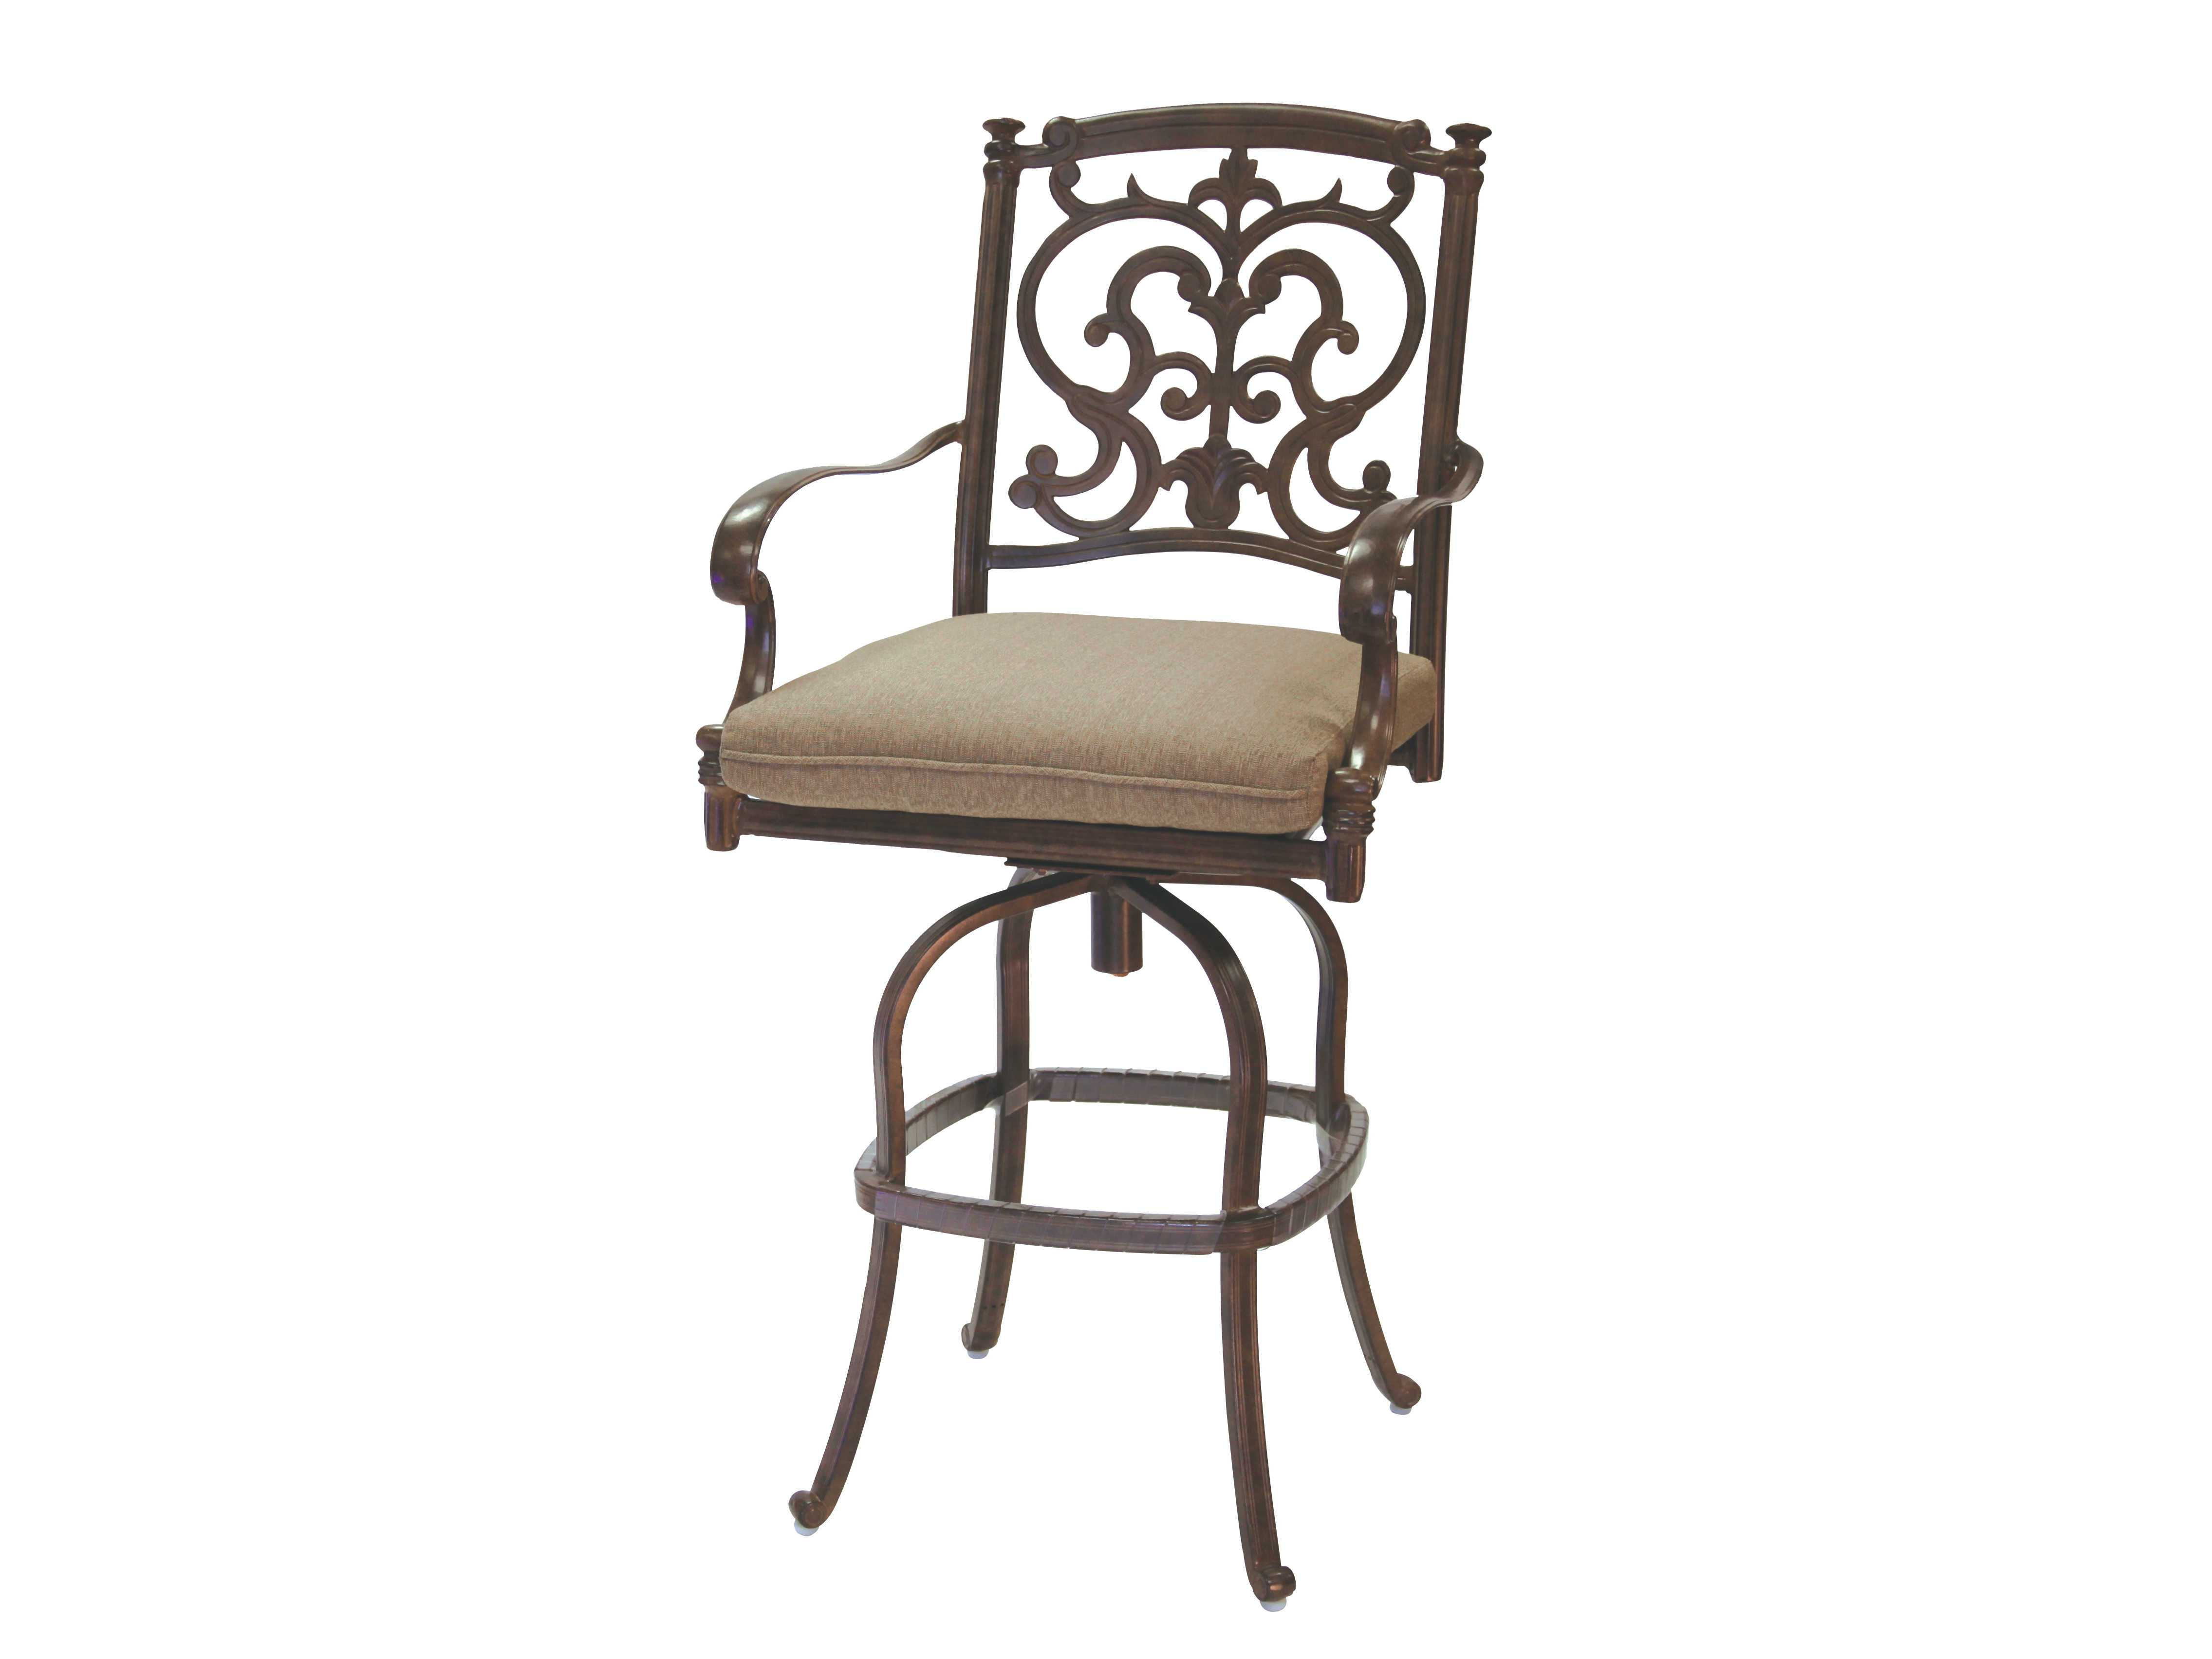 Santa Barbara Patio Furniture